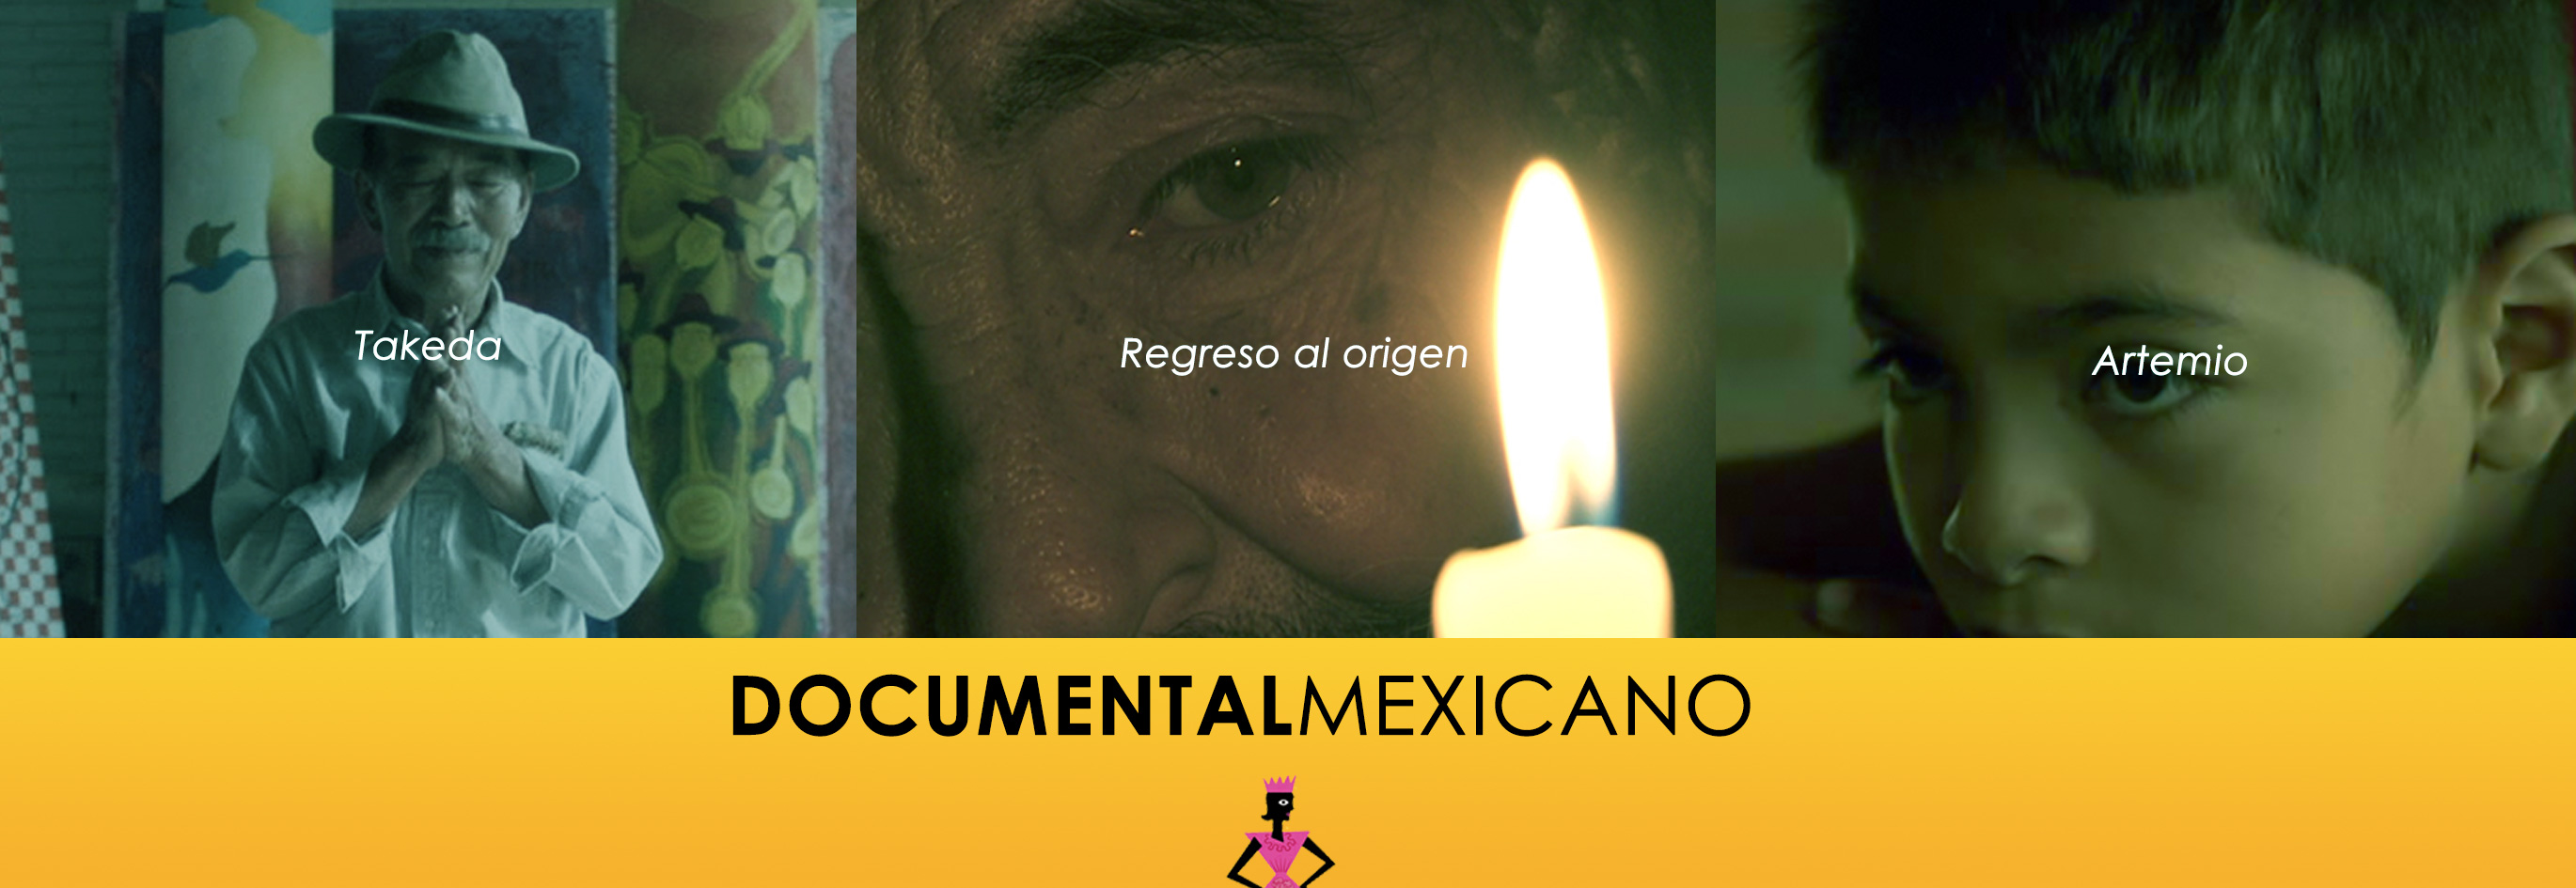 documental mexicano